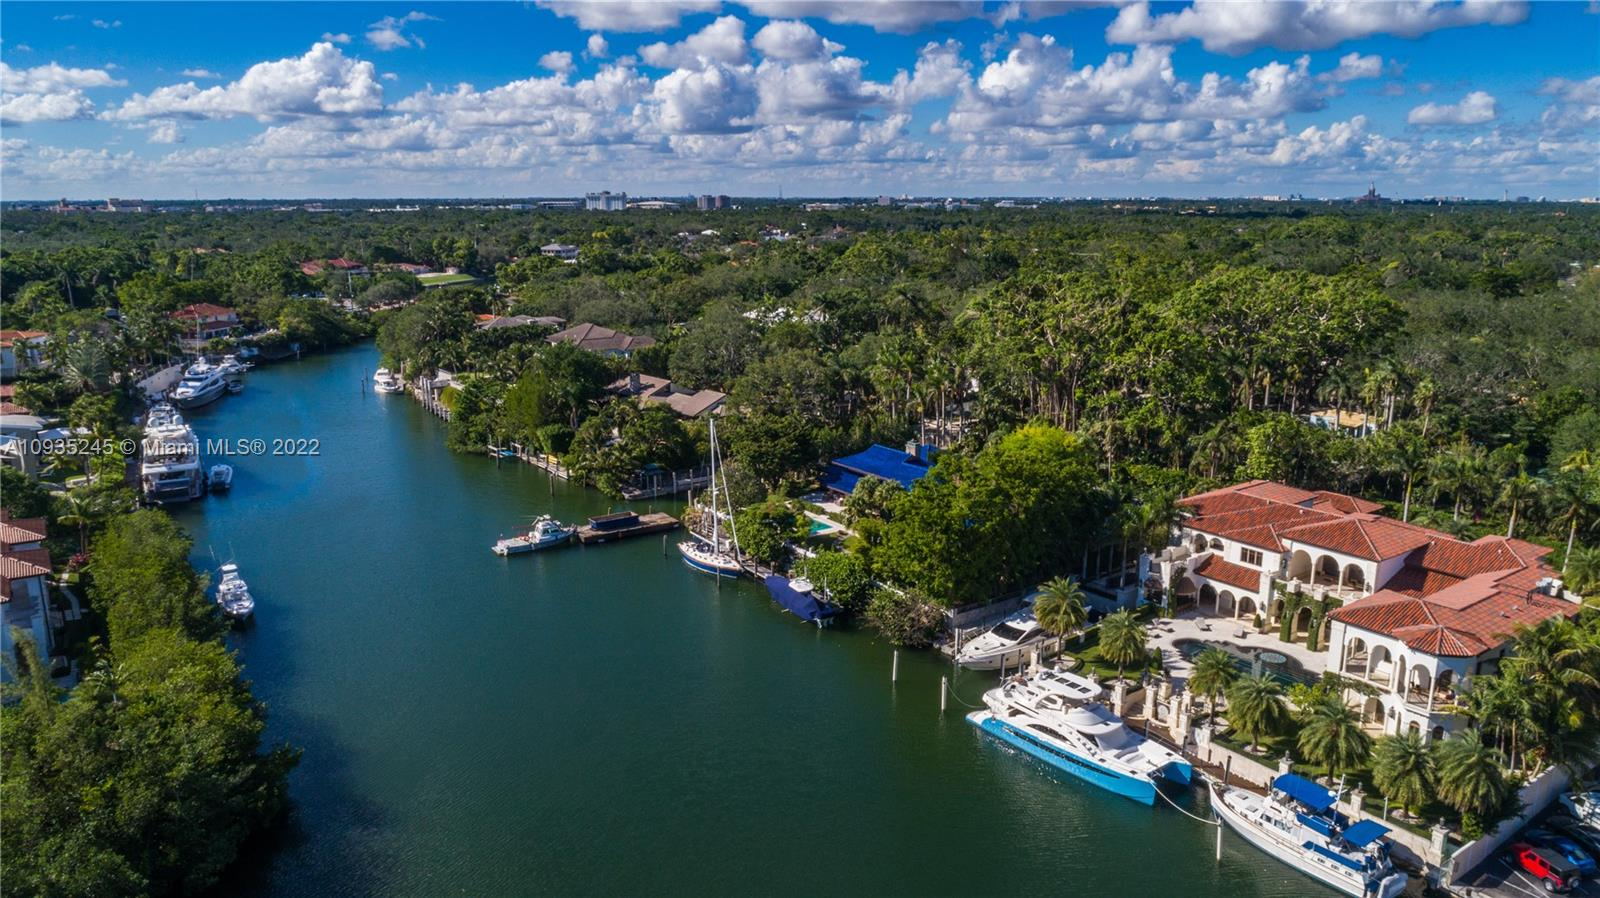 Elegant 13,889 sq ft (LA) Mediterranean style estate, located on prestigious Edgewater Dr., boasts 180 ft water frontage, private dock and deep 80 ft inlet slip with no bridges to bay. Privacy provided by additional 9,539 sq ft driveway/easement leading to garage/carports for 8+ cars. Luxurious 10 BD, 11/2 BA include soaring ceilings, 2 Master Suites, chic kitchen, dual staircase, 2 separate maid's quarters and 2 elevators. Multiple terraces overlook Gables Waterway, large backyard with pool and impressive outdoor kitchen.